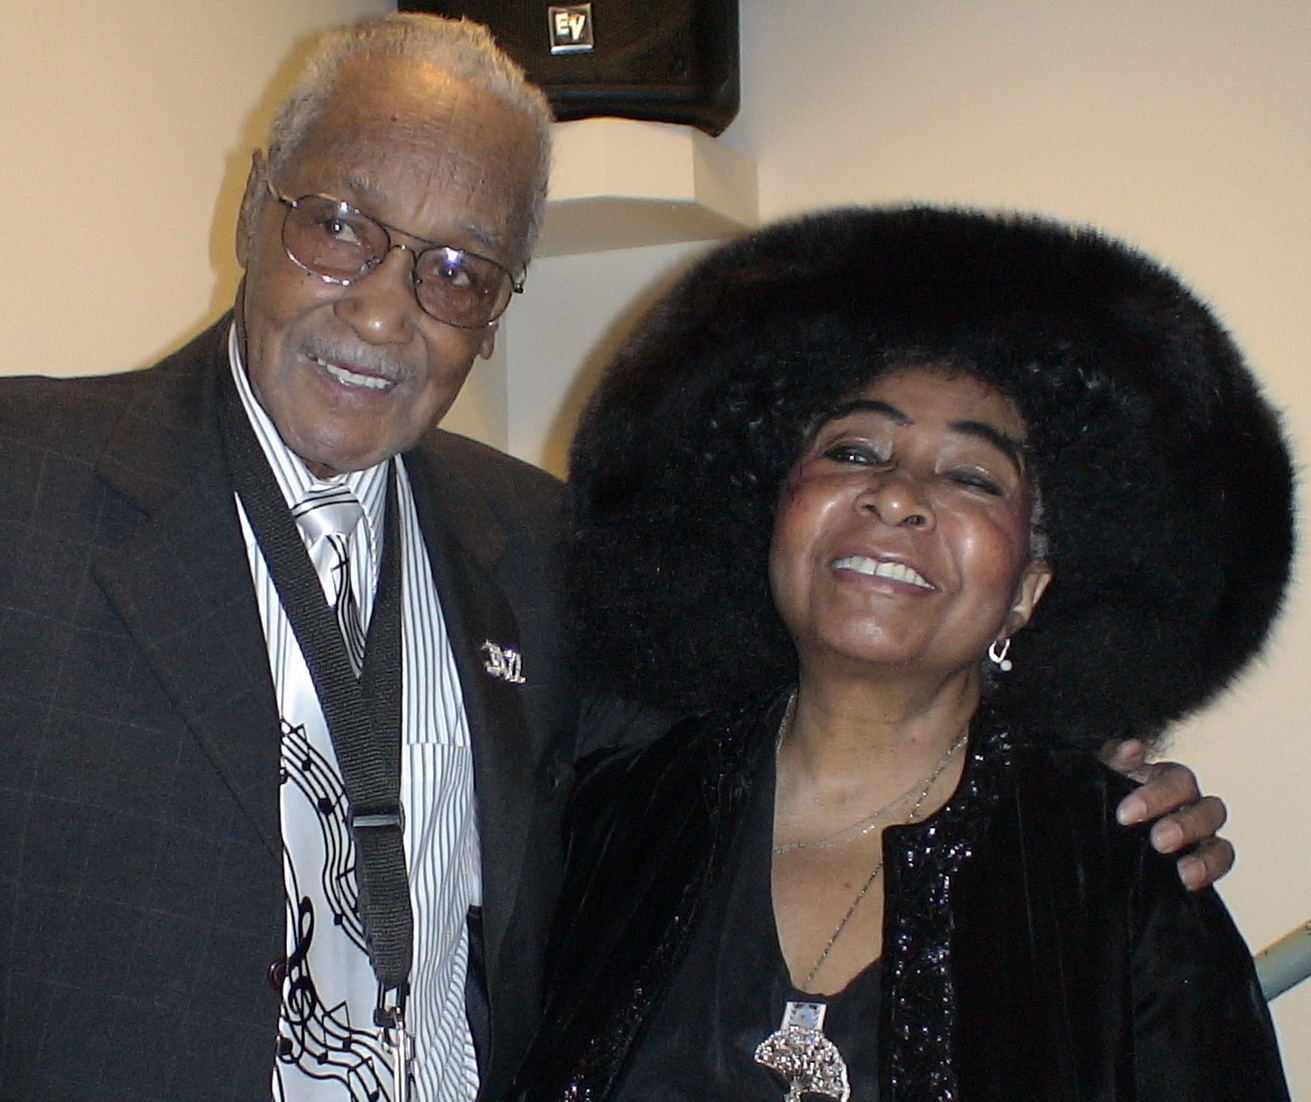 95th B'day Celebratioin for Saxophonist Fred Staton with Organist Sarah McLawler Local 802 Band Room February 15, 2010